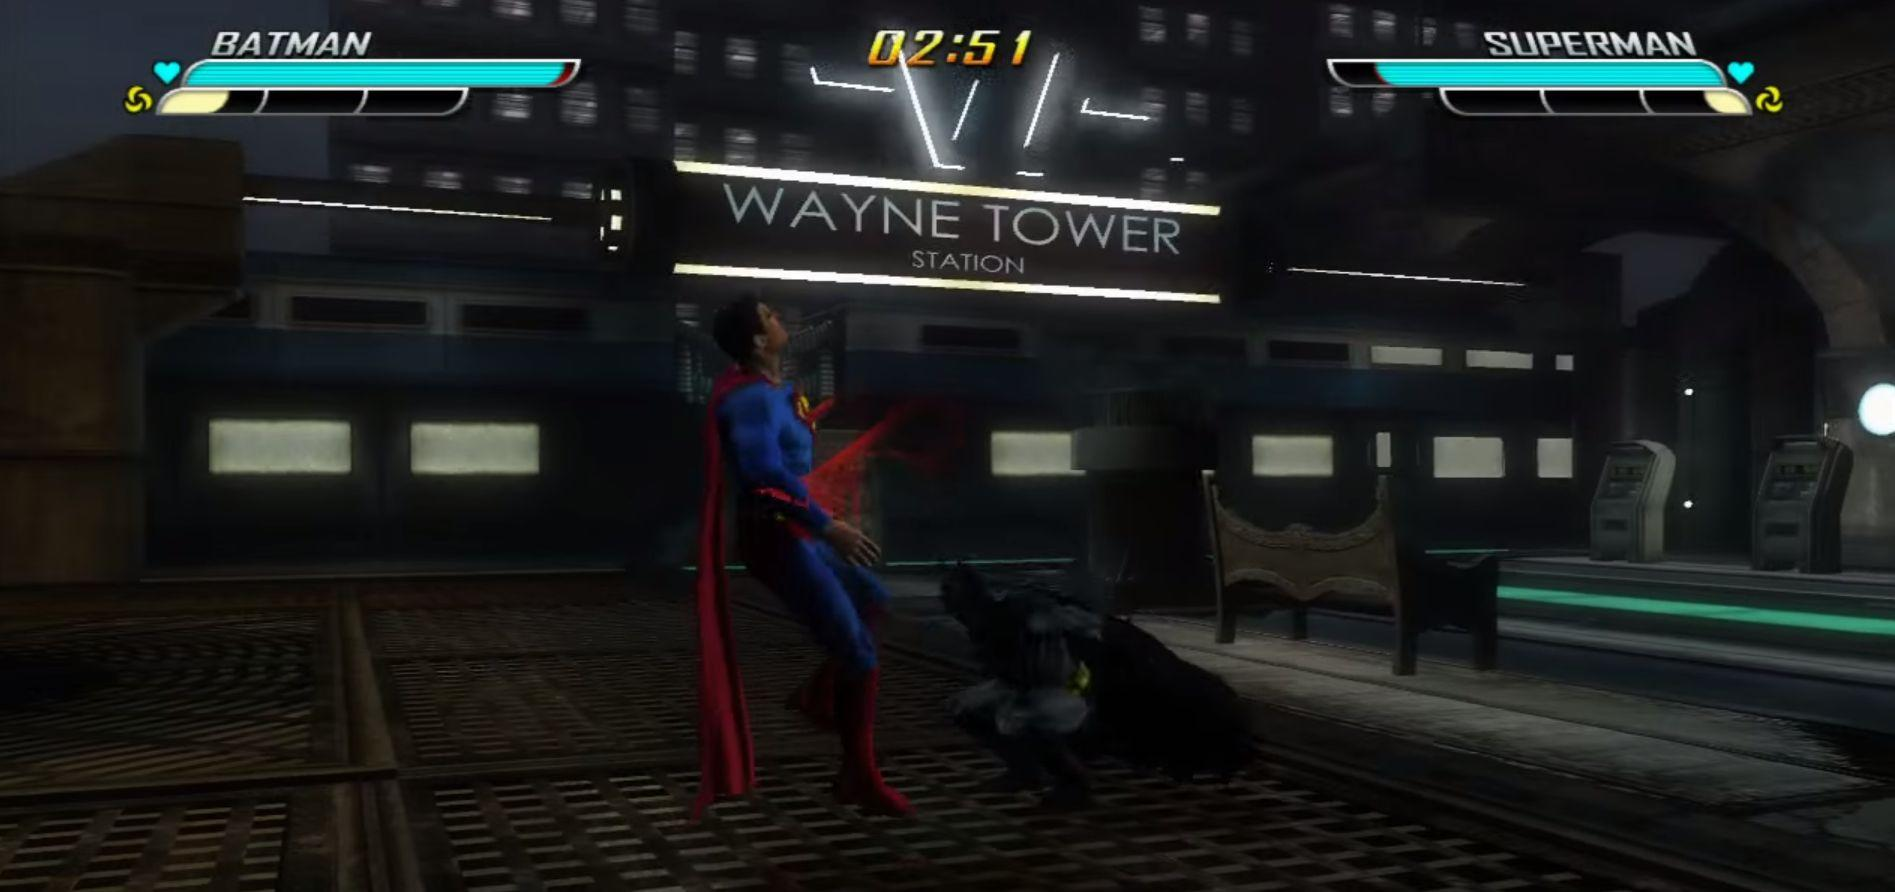 Watch Batman Beat Superman in Canceled Justice League Game